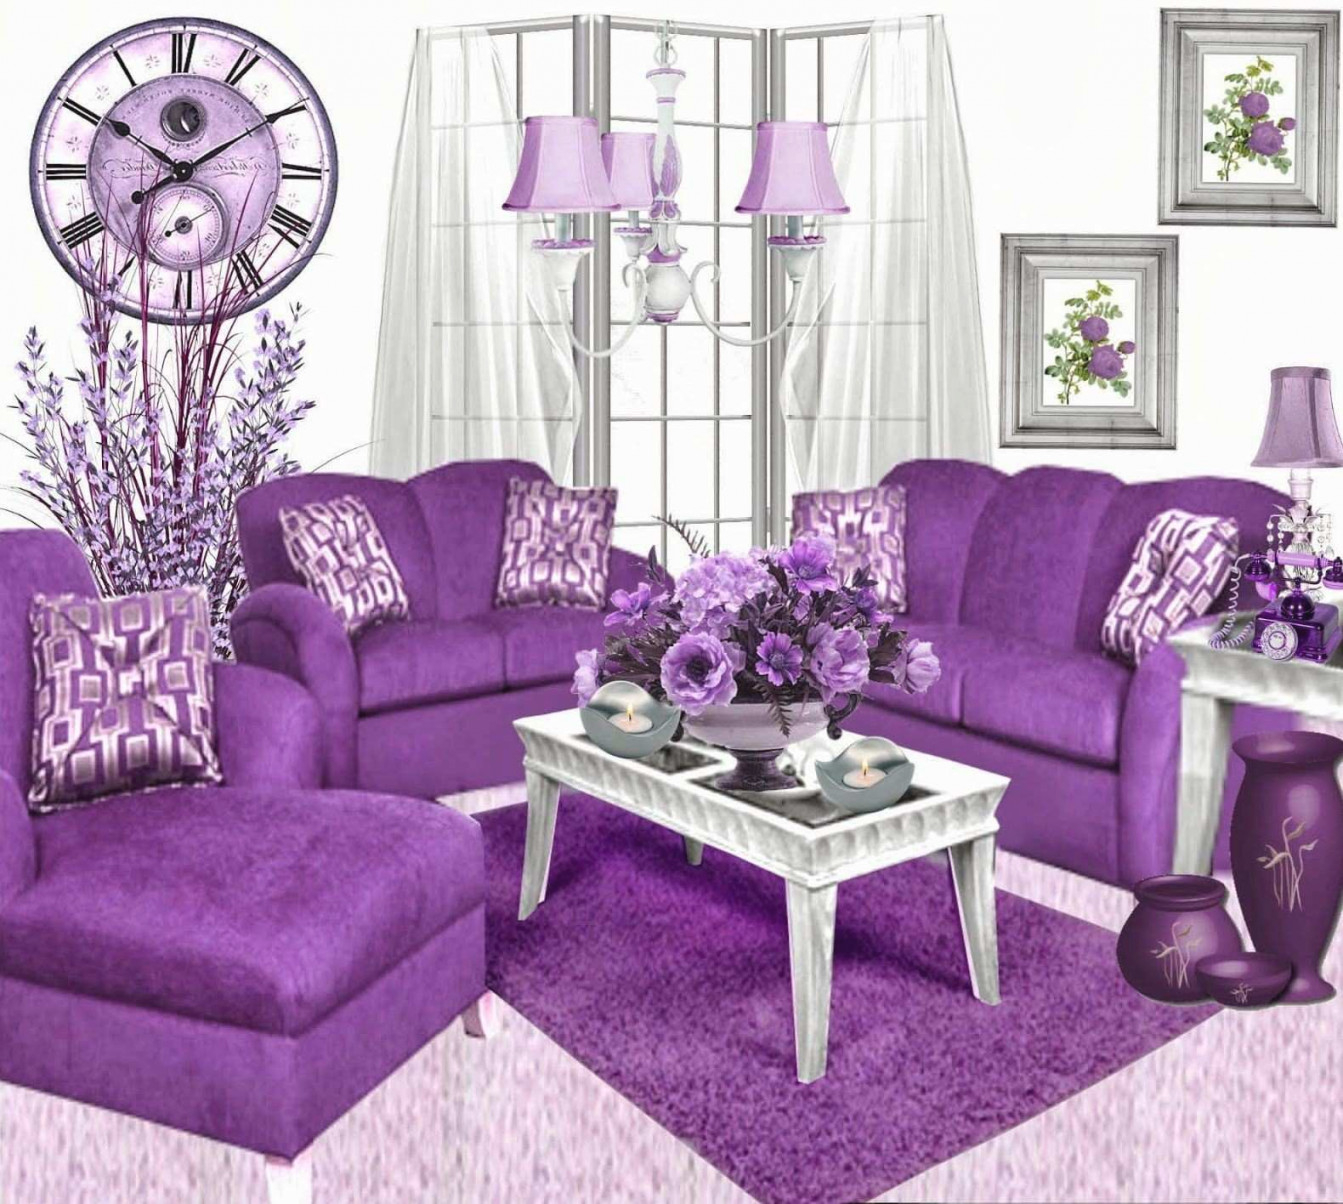 Only Furniture: Purple Living Room Accessories | Home Furniture for 12+ Awesome Gallery For Purple And Grey Living Room Ideas